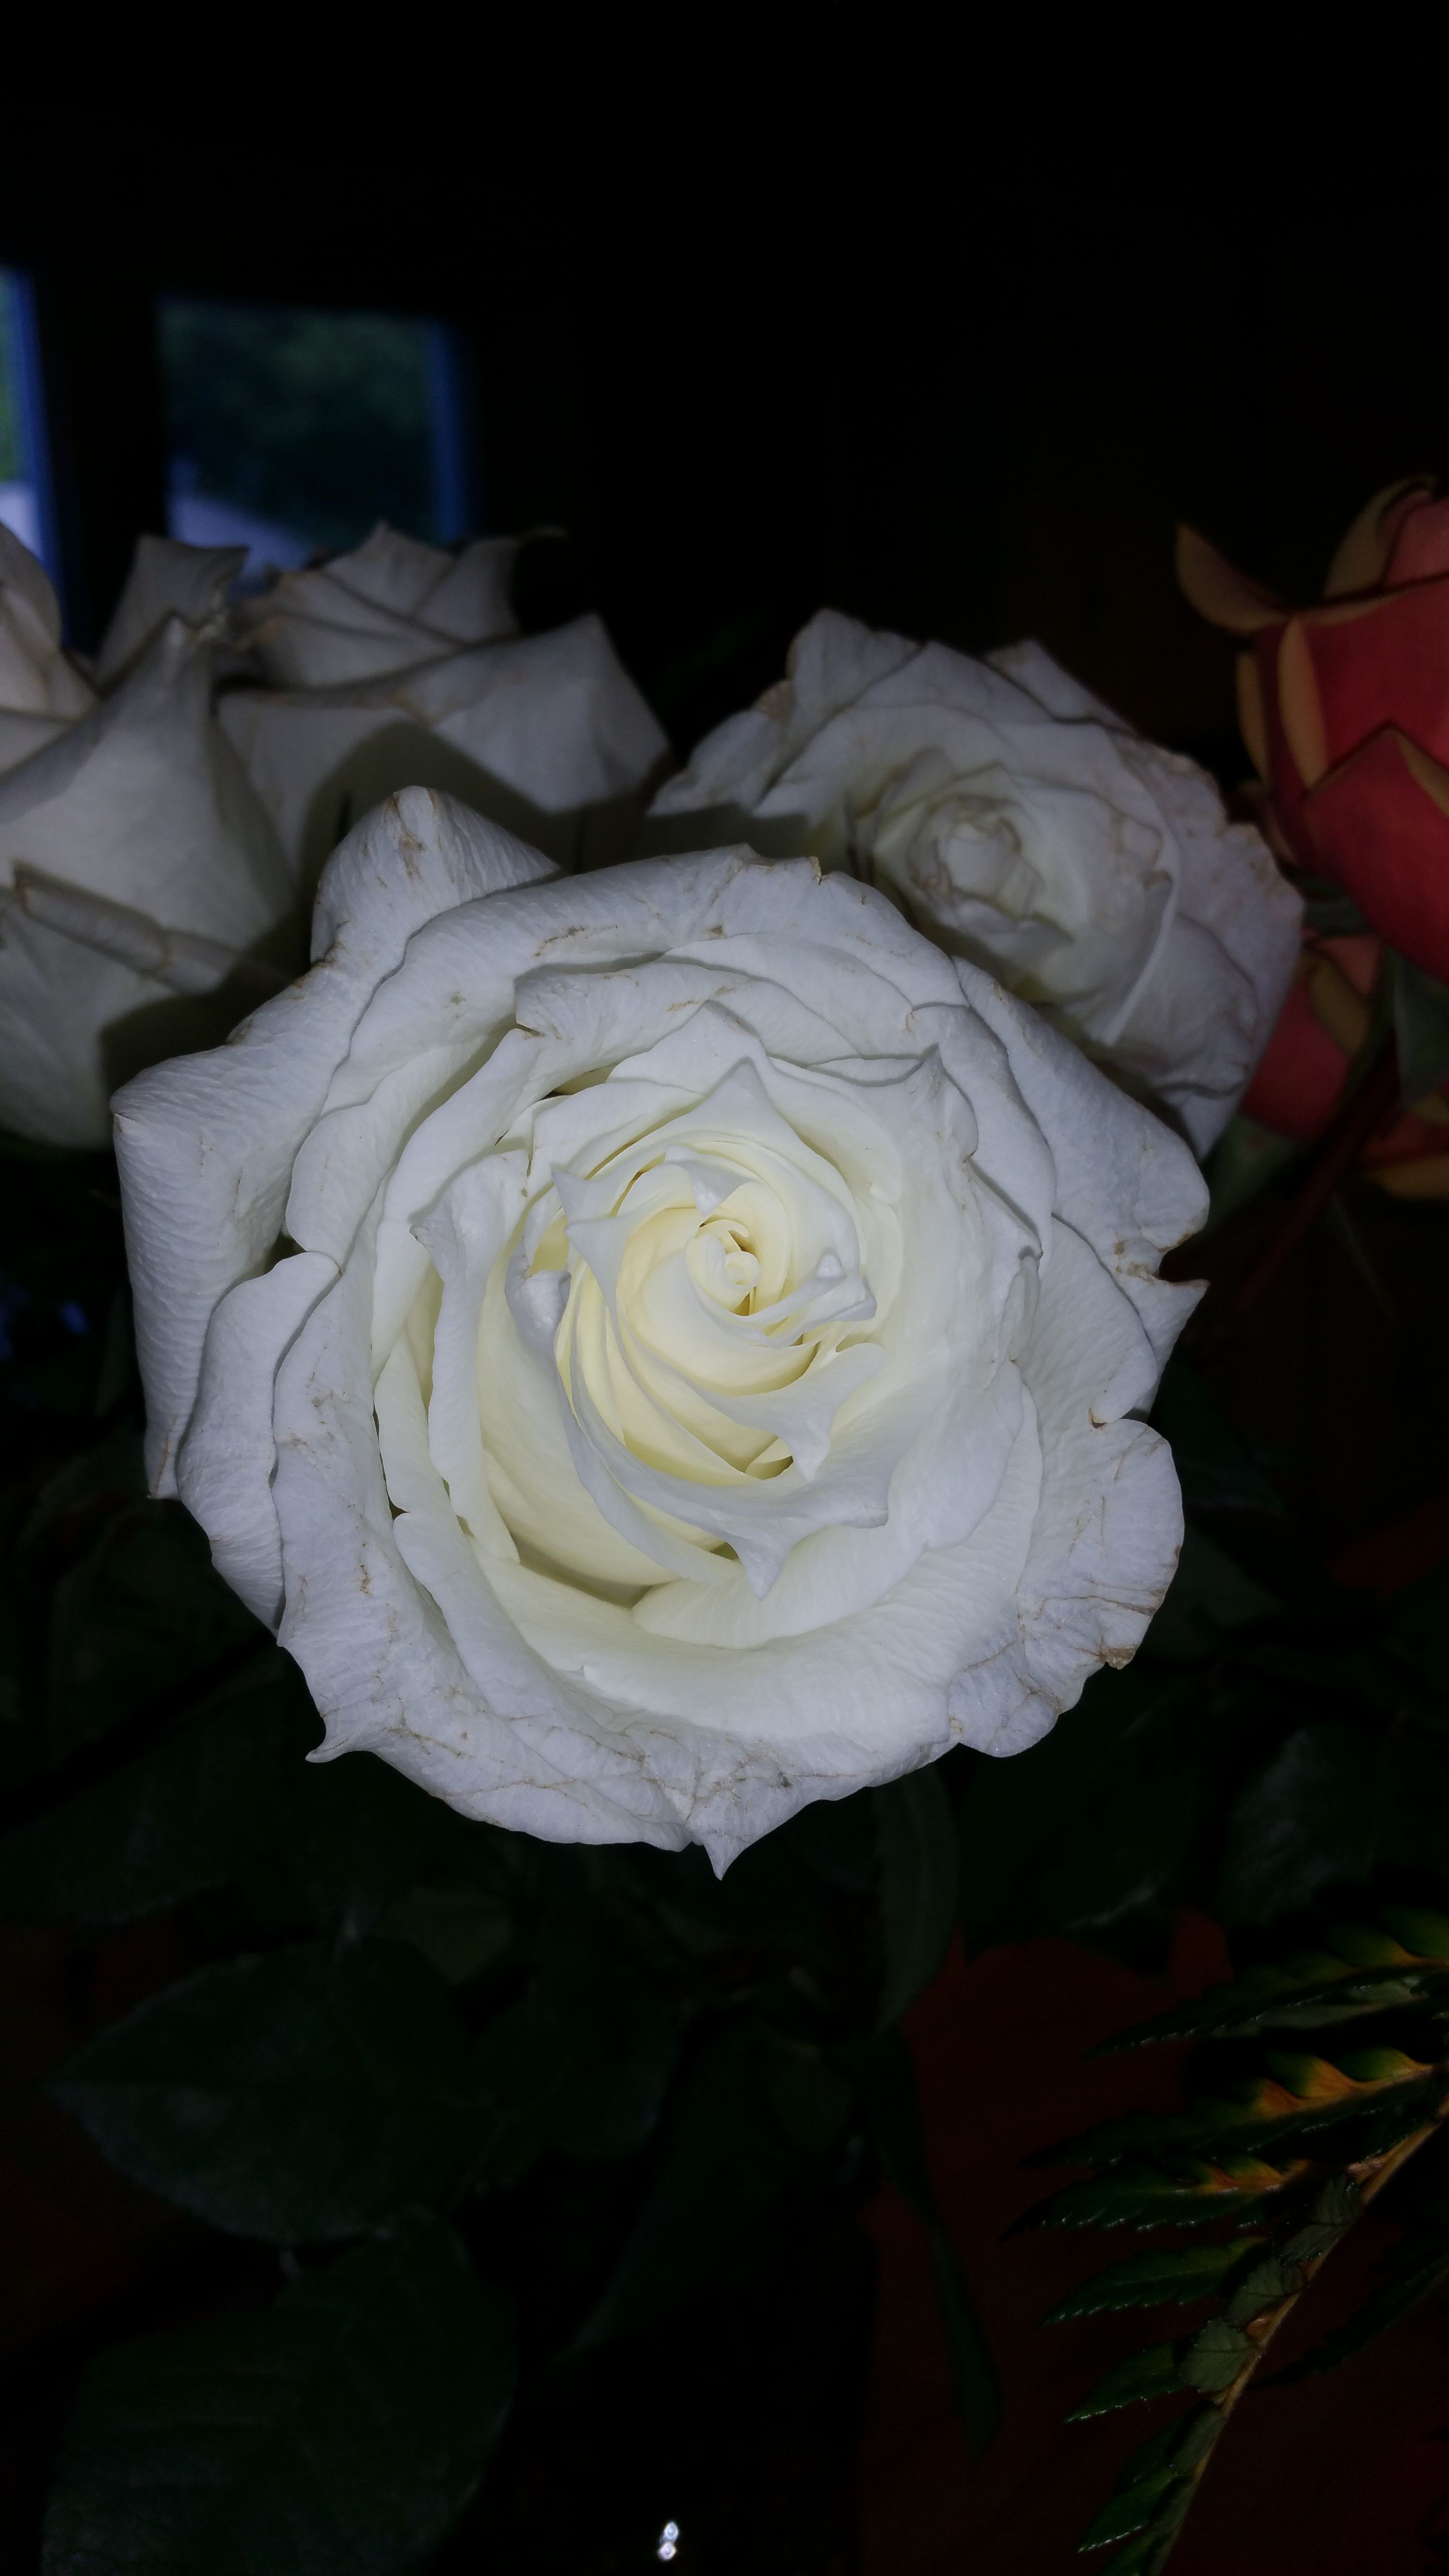 Time to stop & clear off the negative energy. The white light, positive energy with protection like thorns on a rose